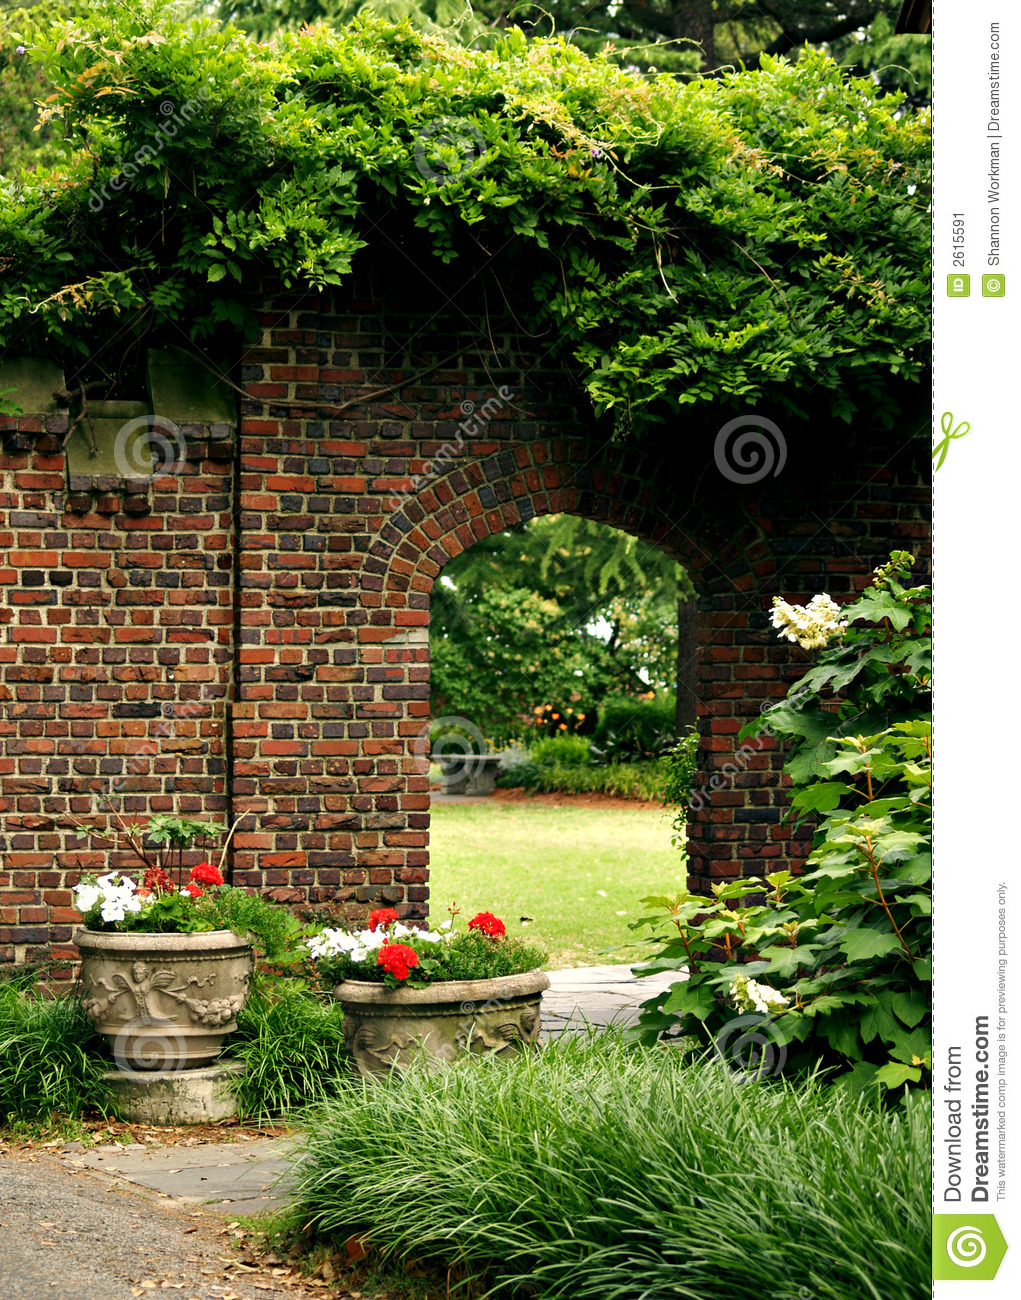 Secret Garden Stock Image   Image  2615591